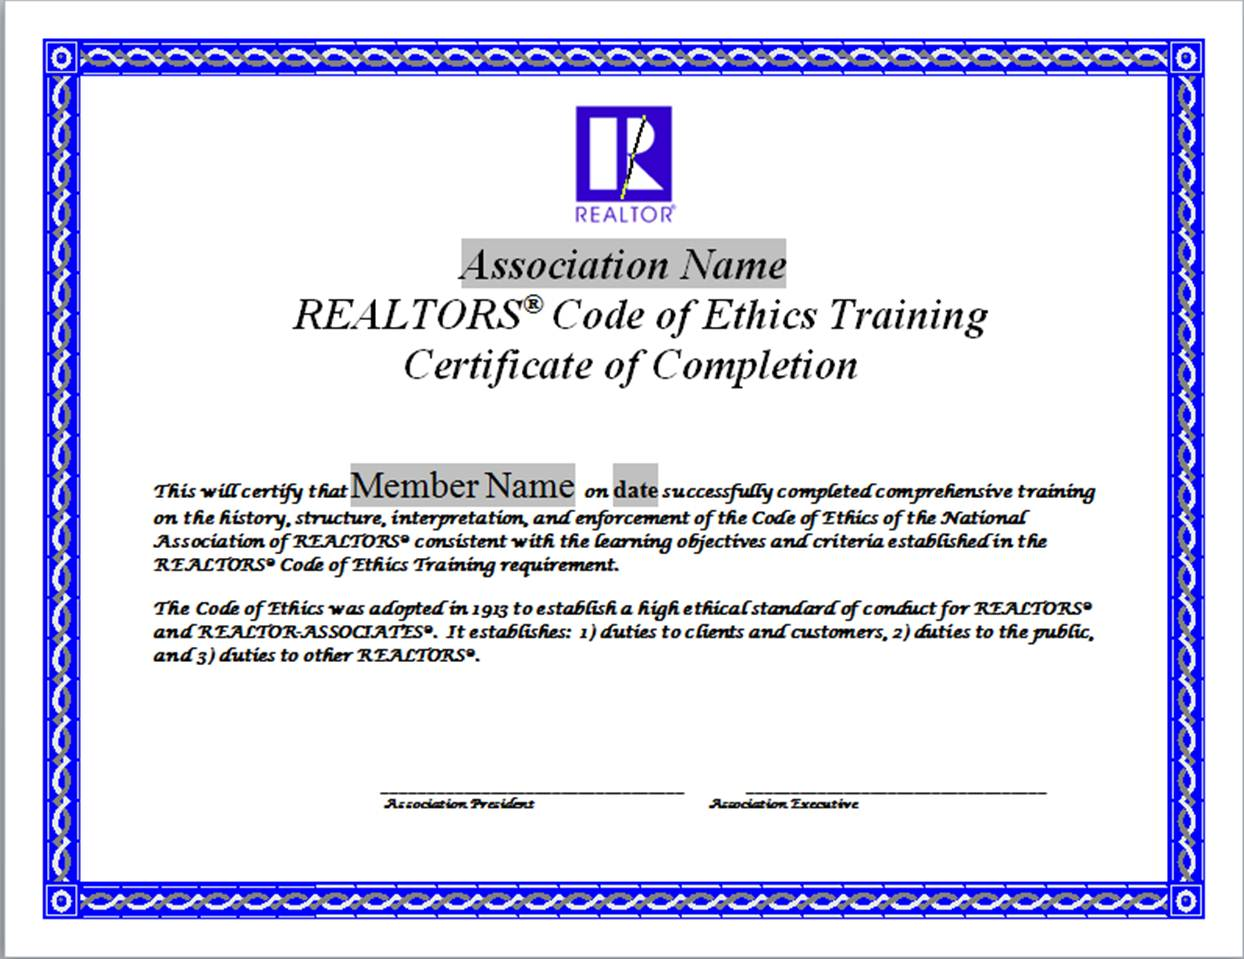 Code Of Ethics Training Certificates Naraltor